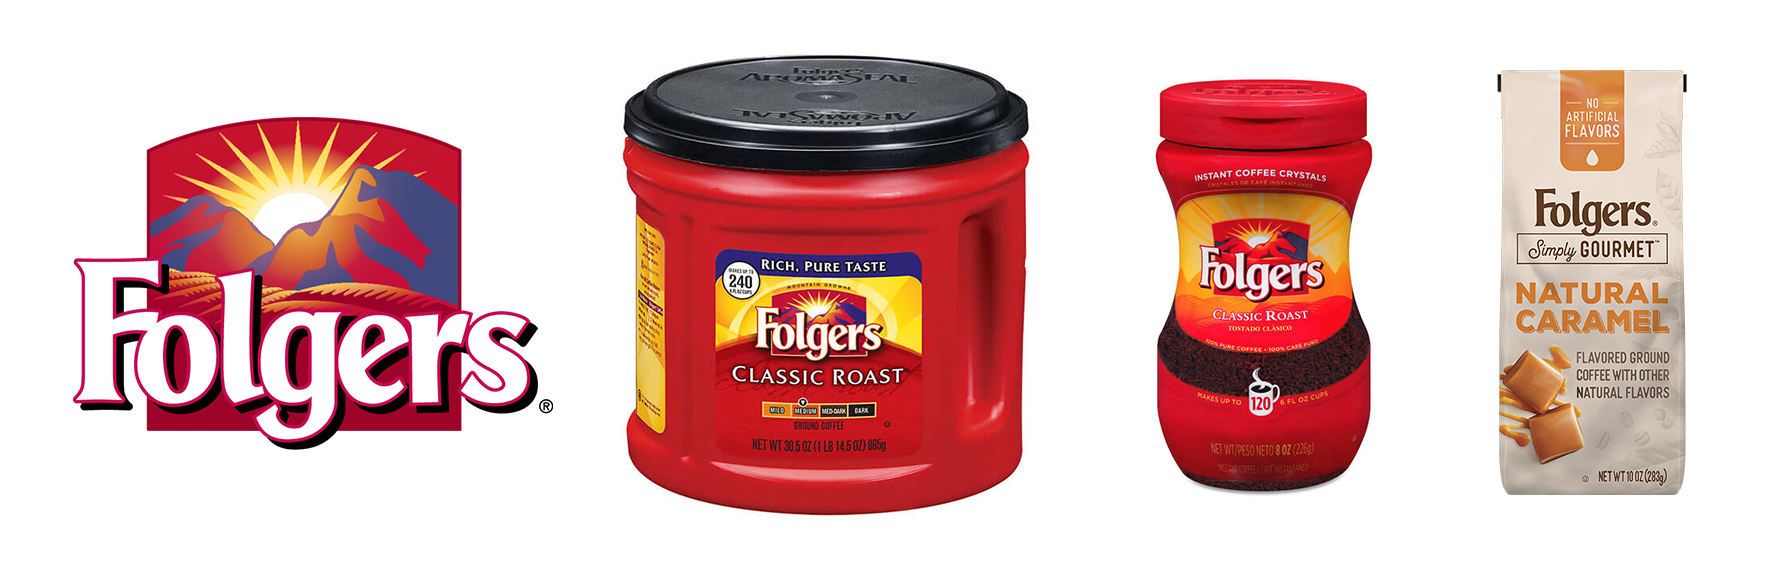 Folgers Current Products